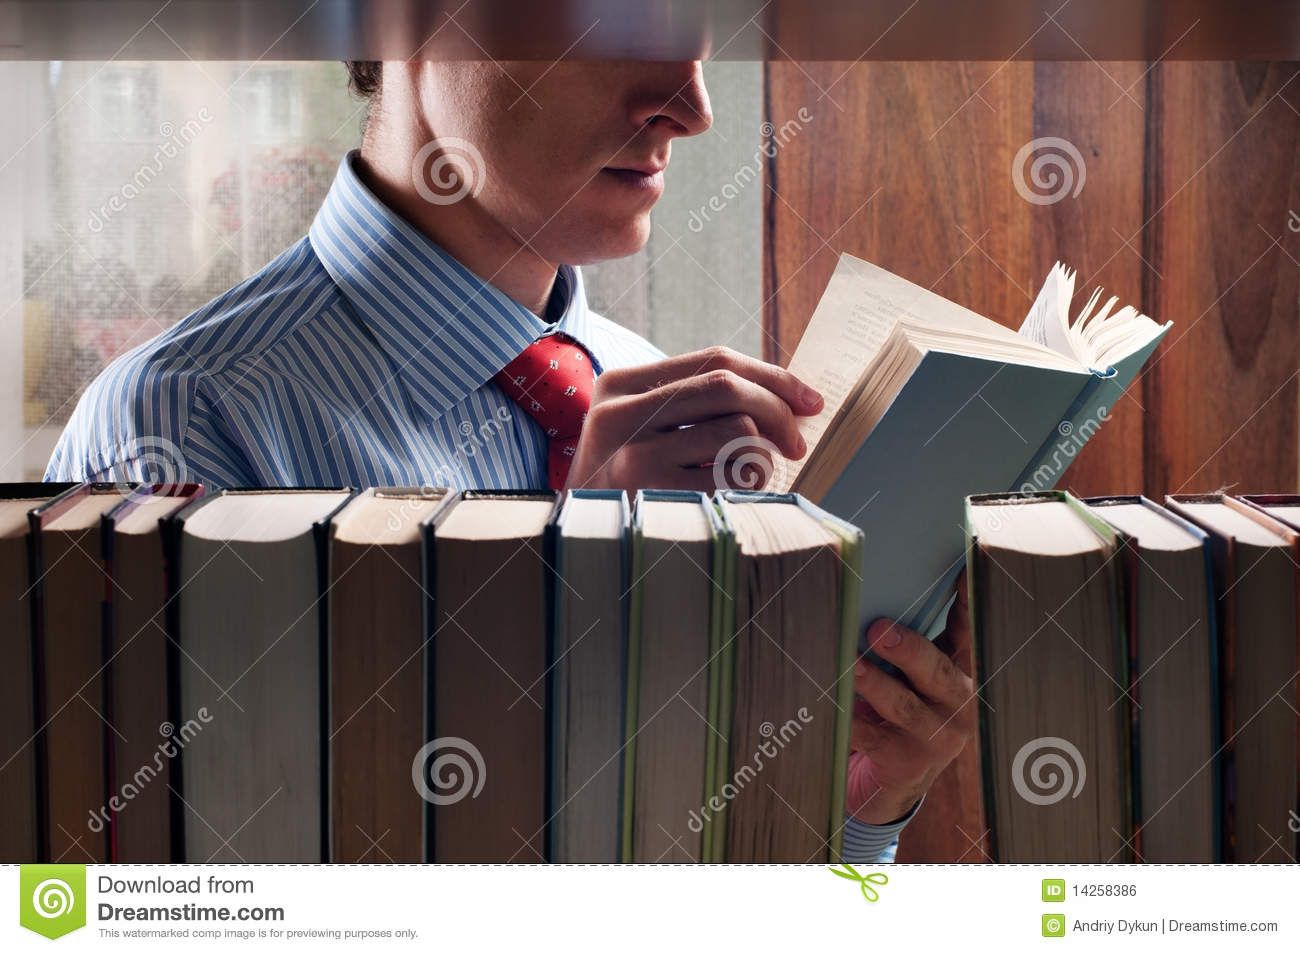 Men reading a book